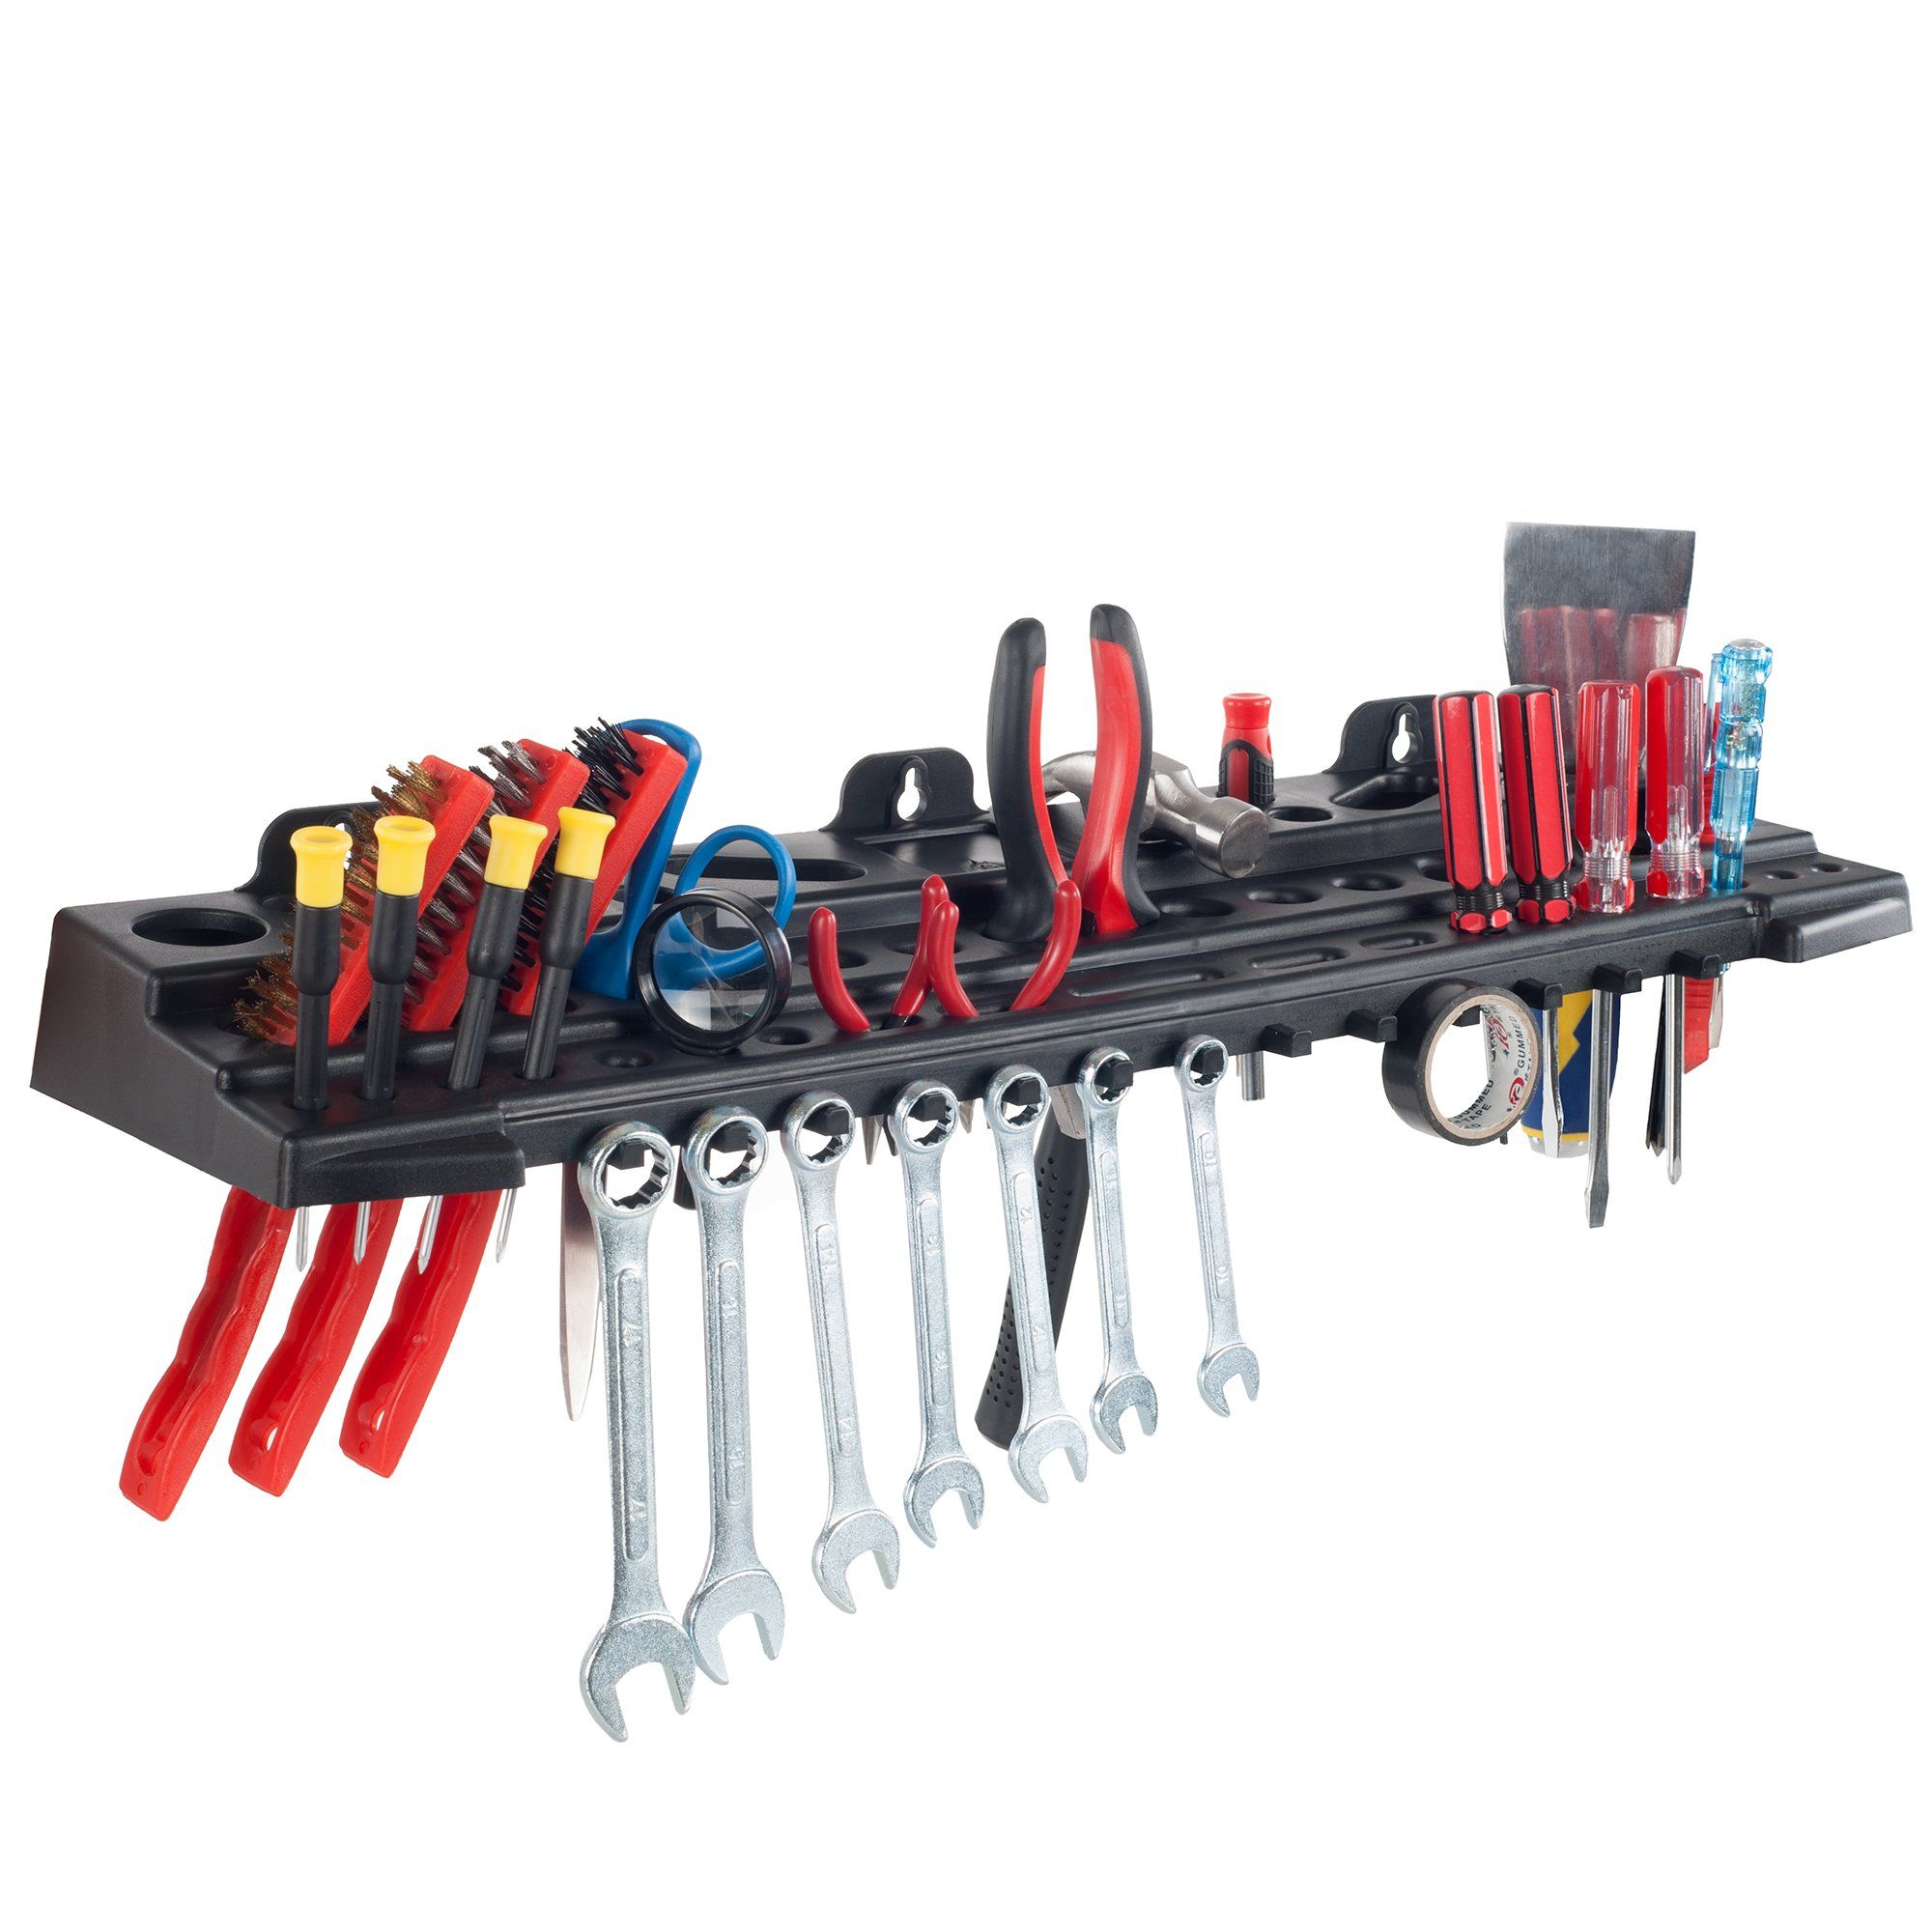 Multitool Organizer for Hand Tools Automotive Tools and Electric